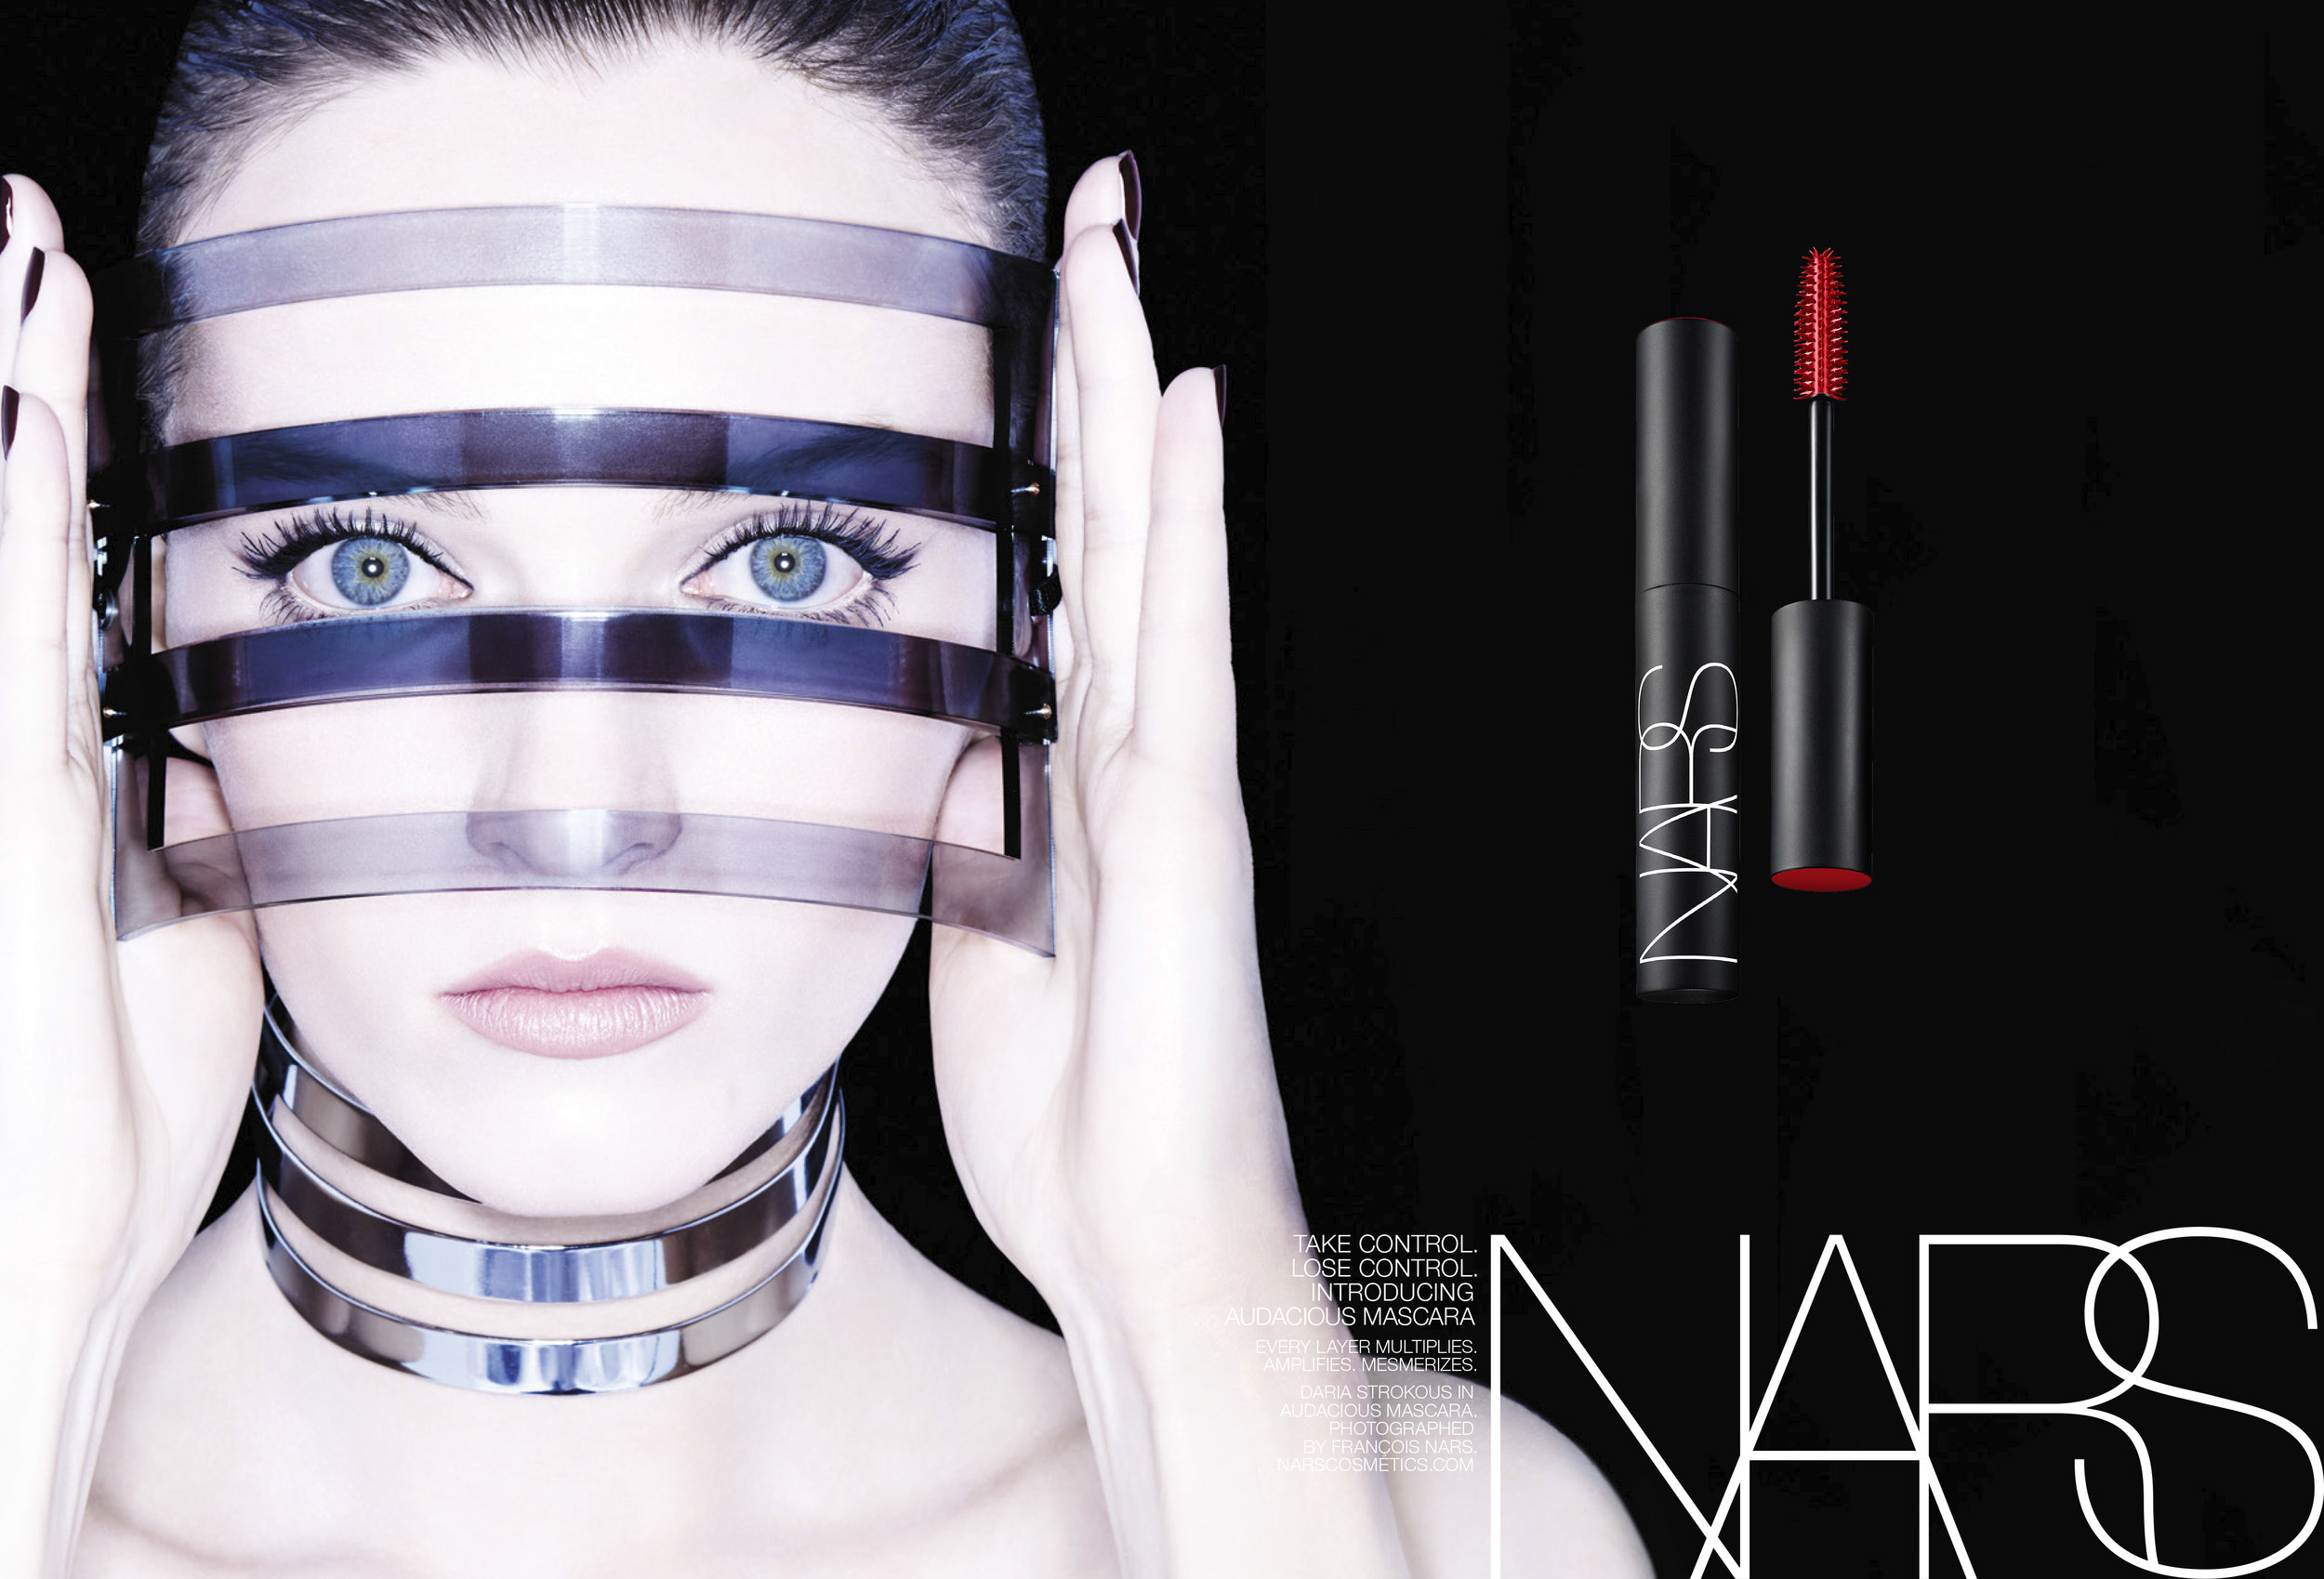 150320_Nars_FW15_Layout_Final-3.jpg